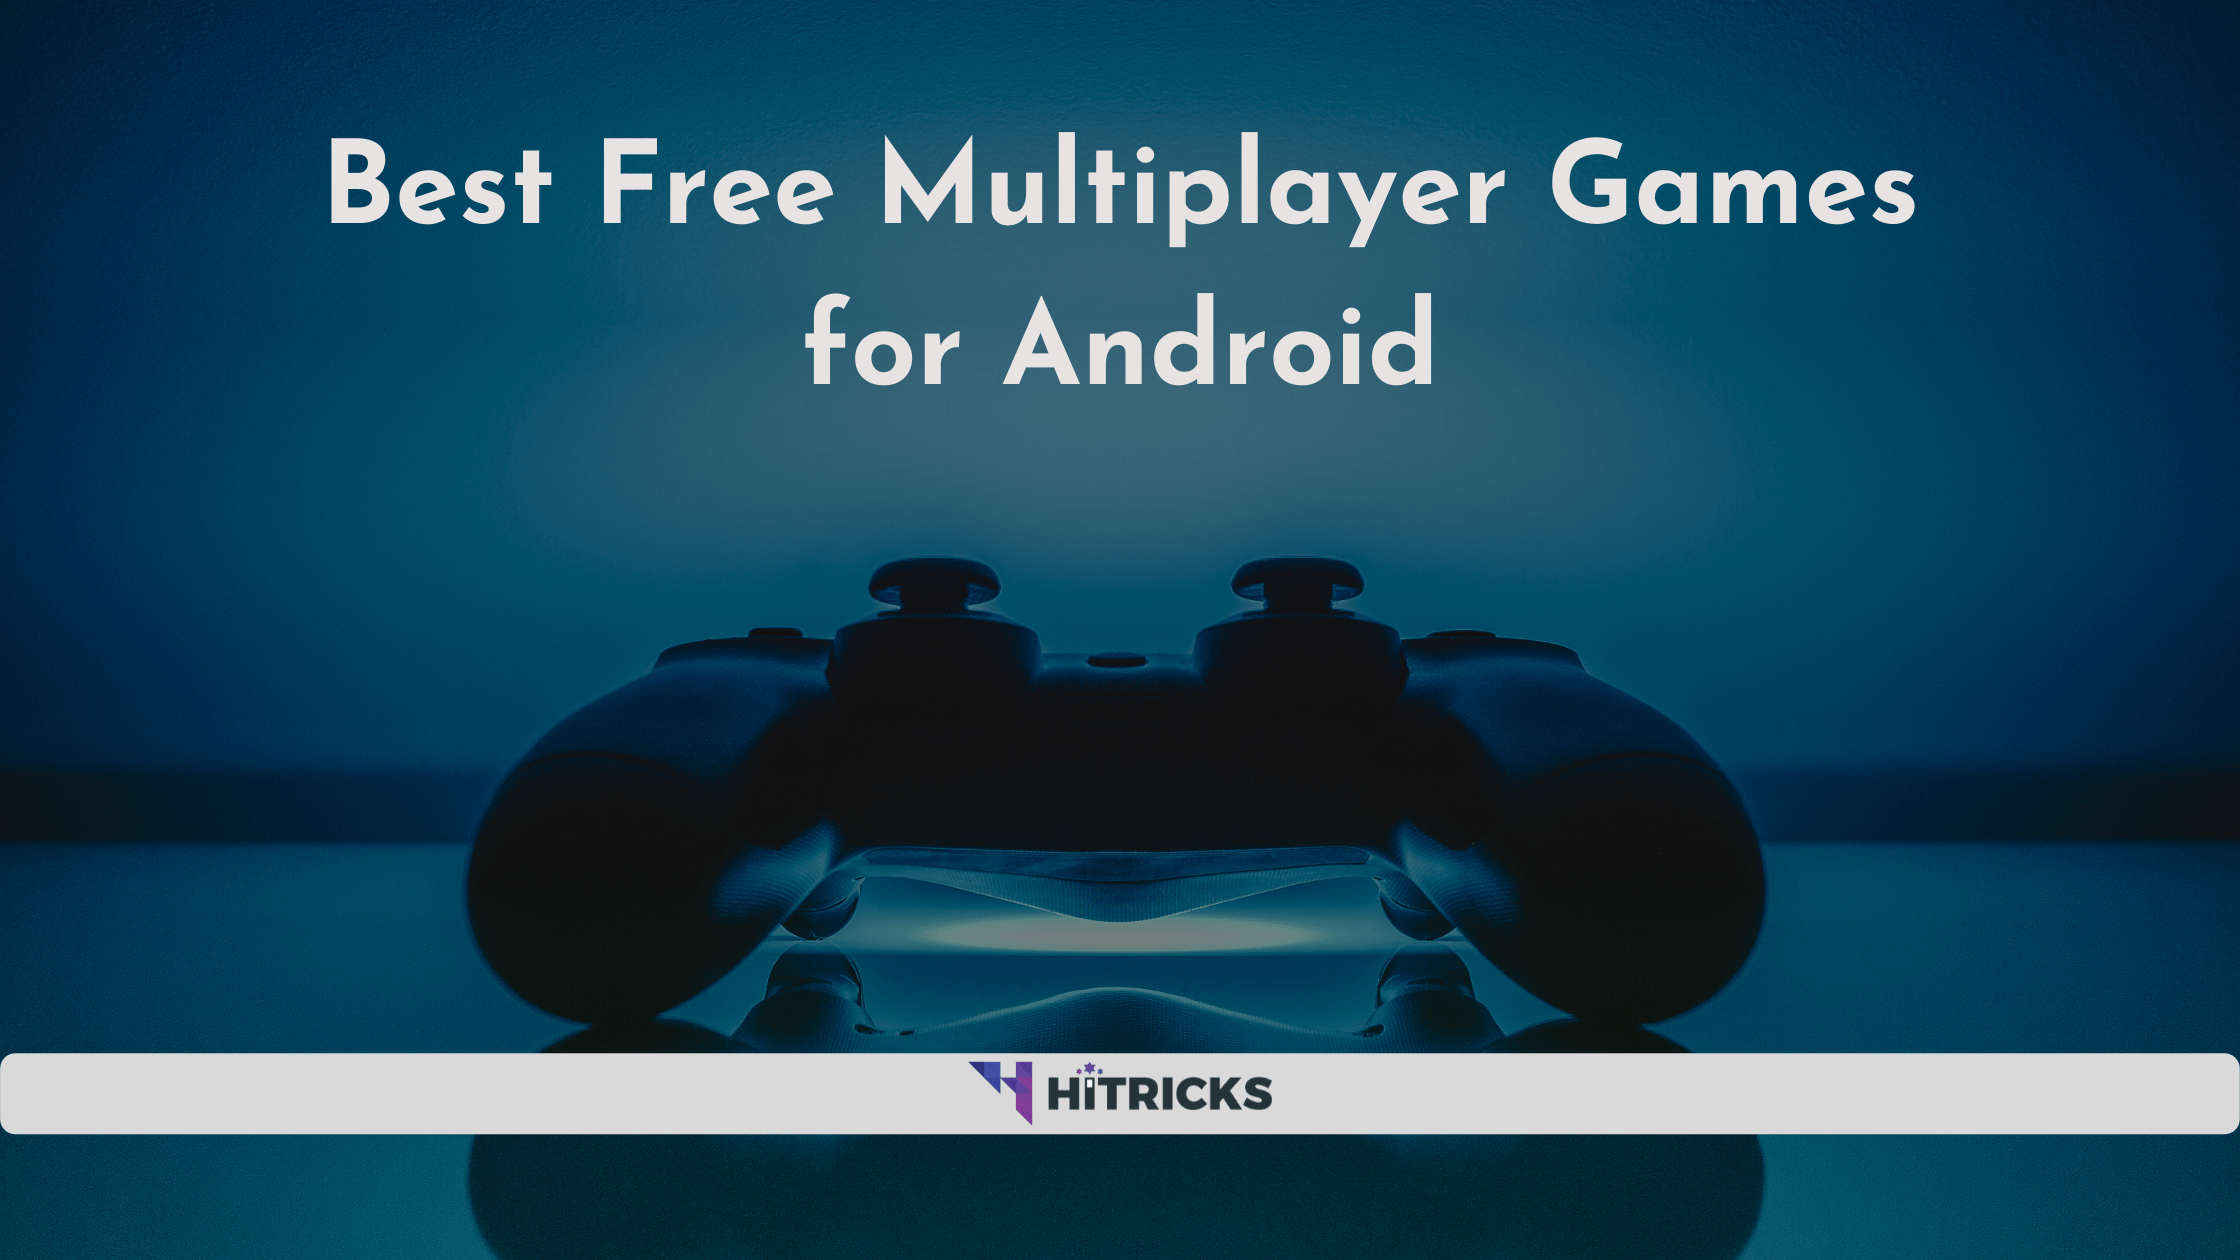 Best Free Multiplayer Games for Android 2020